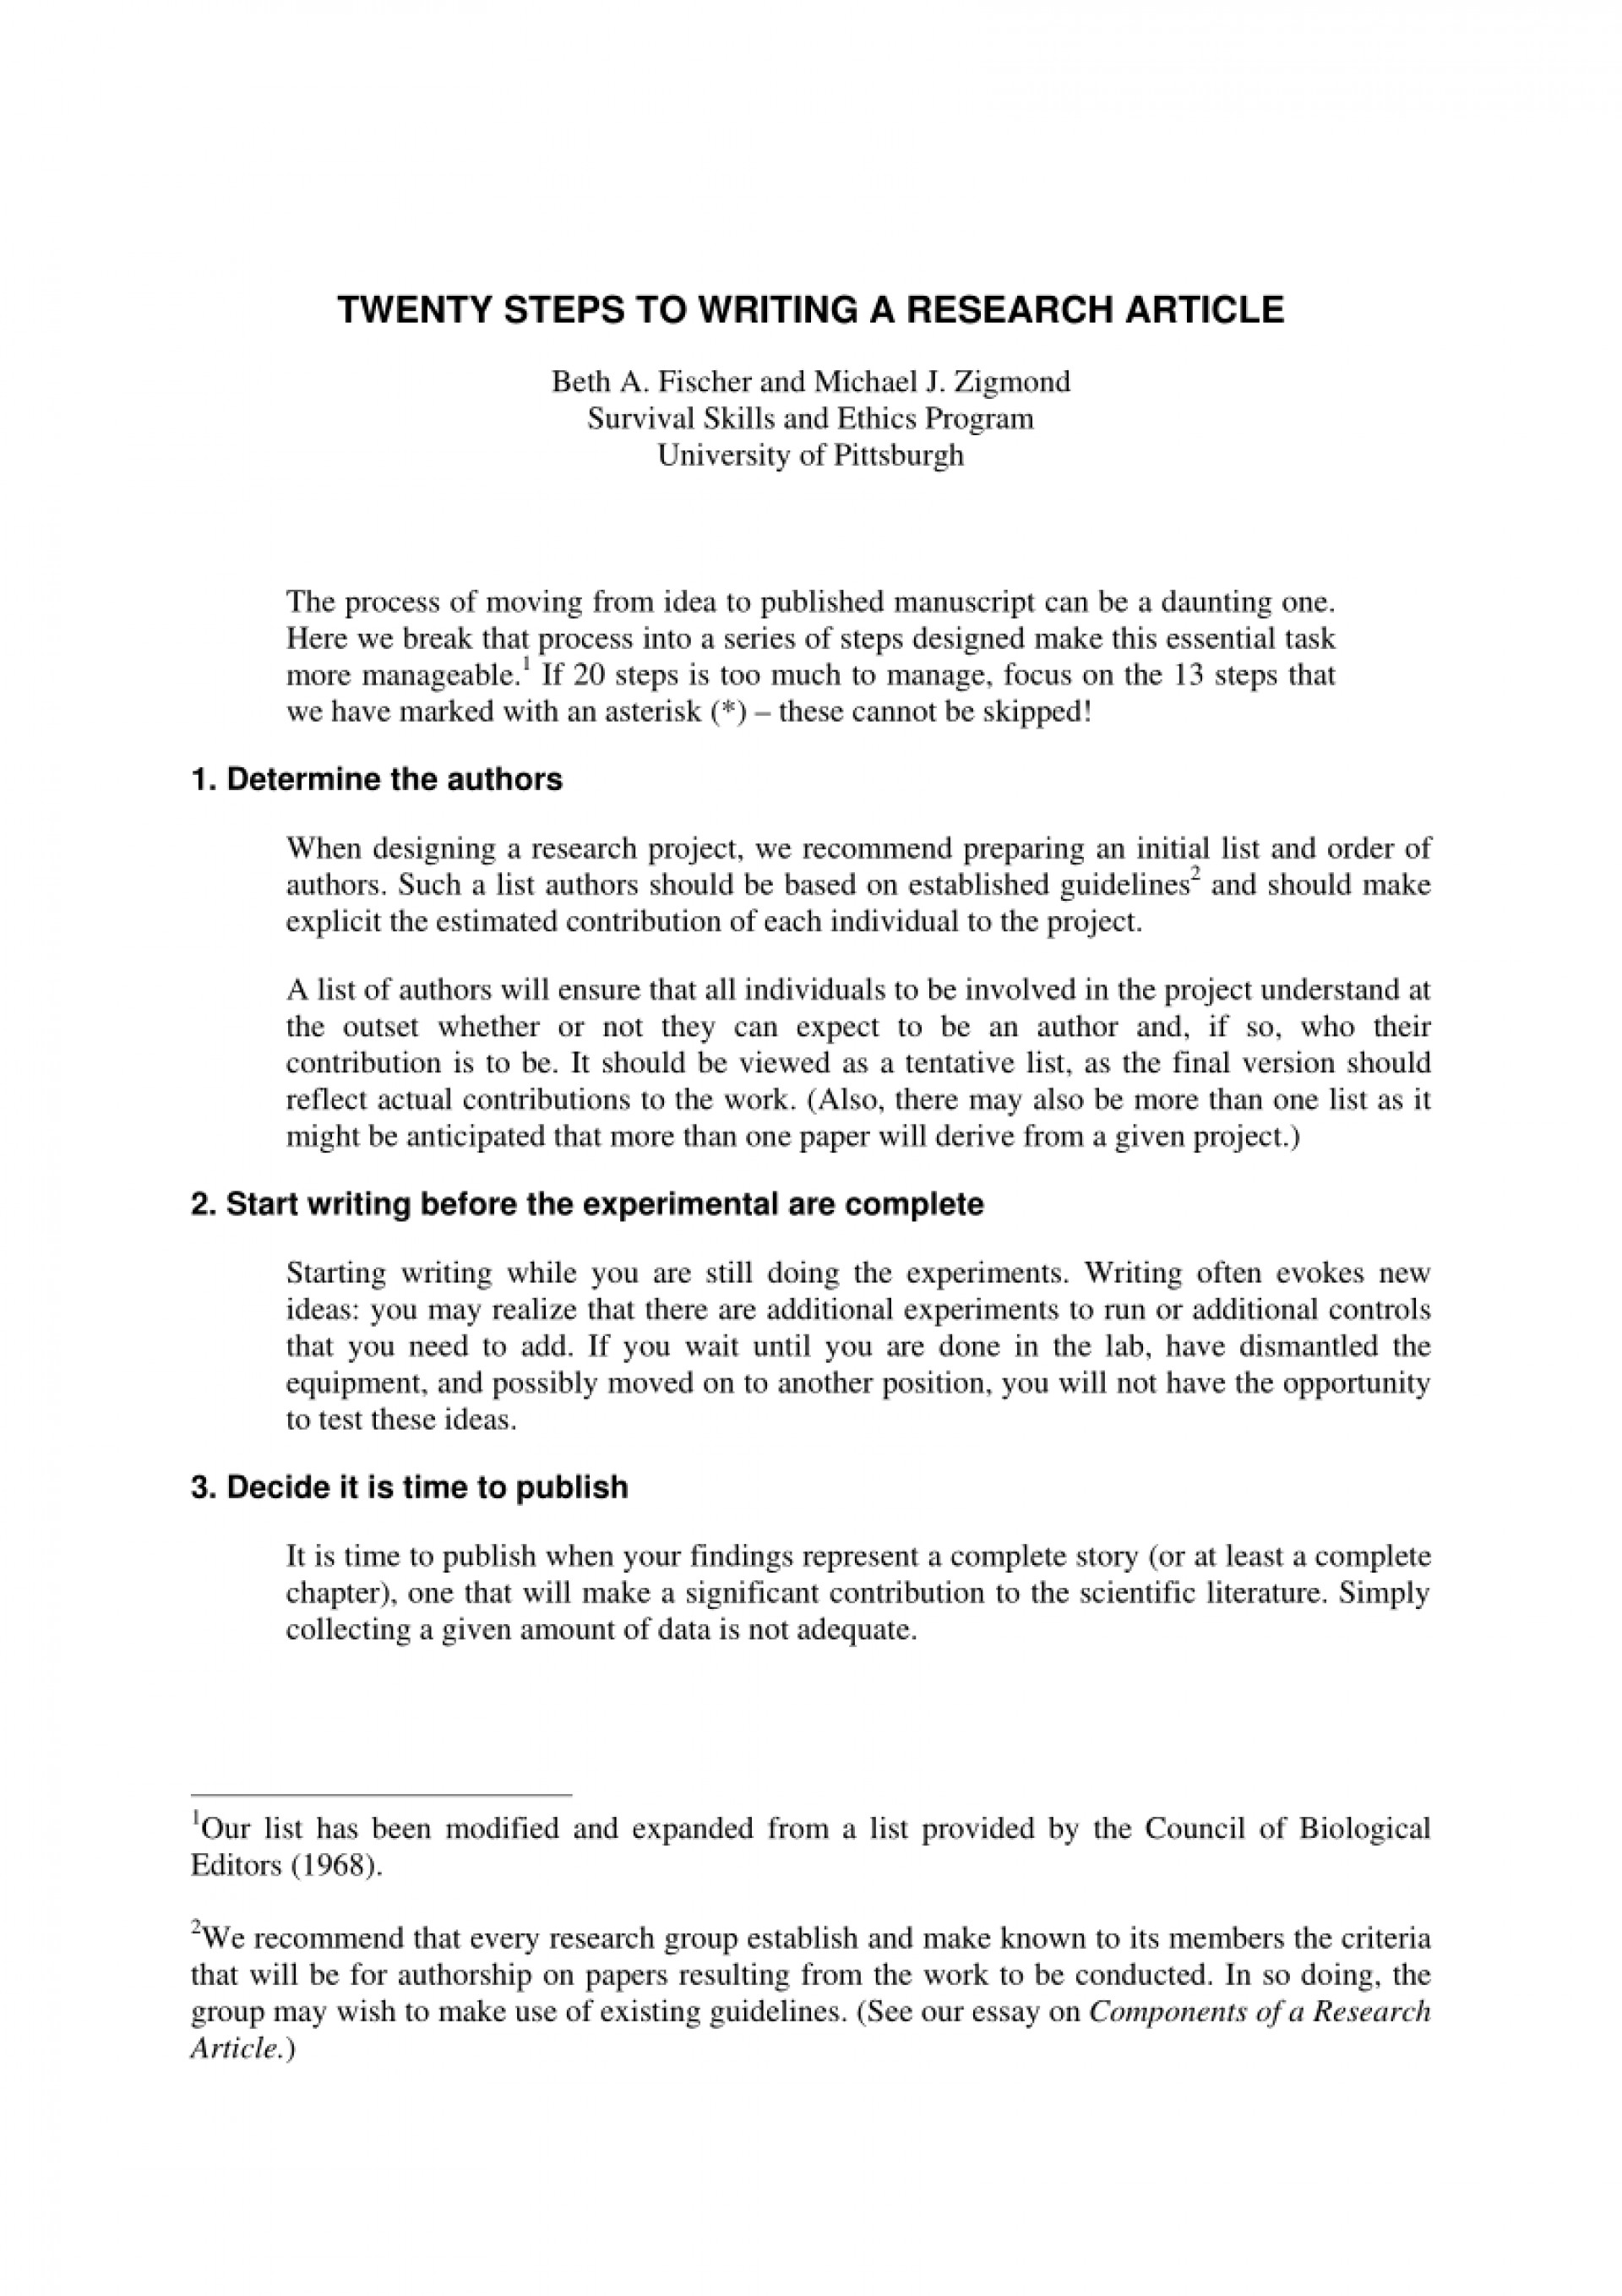 008 Steps For Writing Research Paper Breathtaking A In Ppt 10 To Write Basic Easy 1920